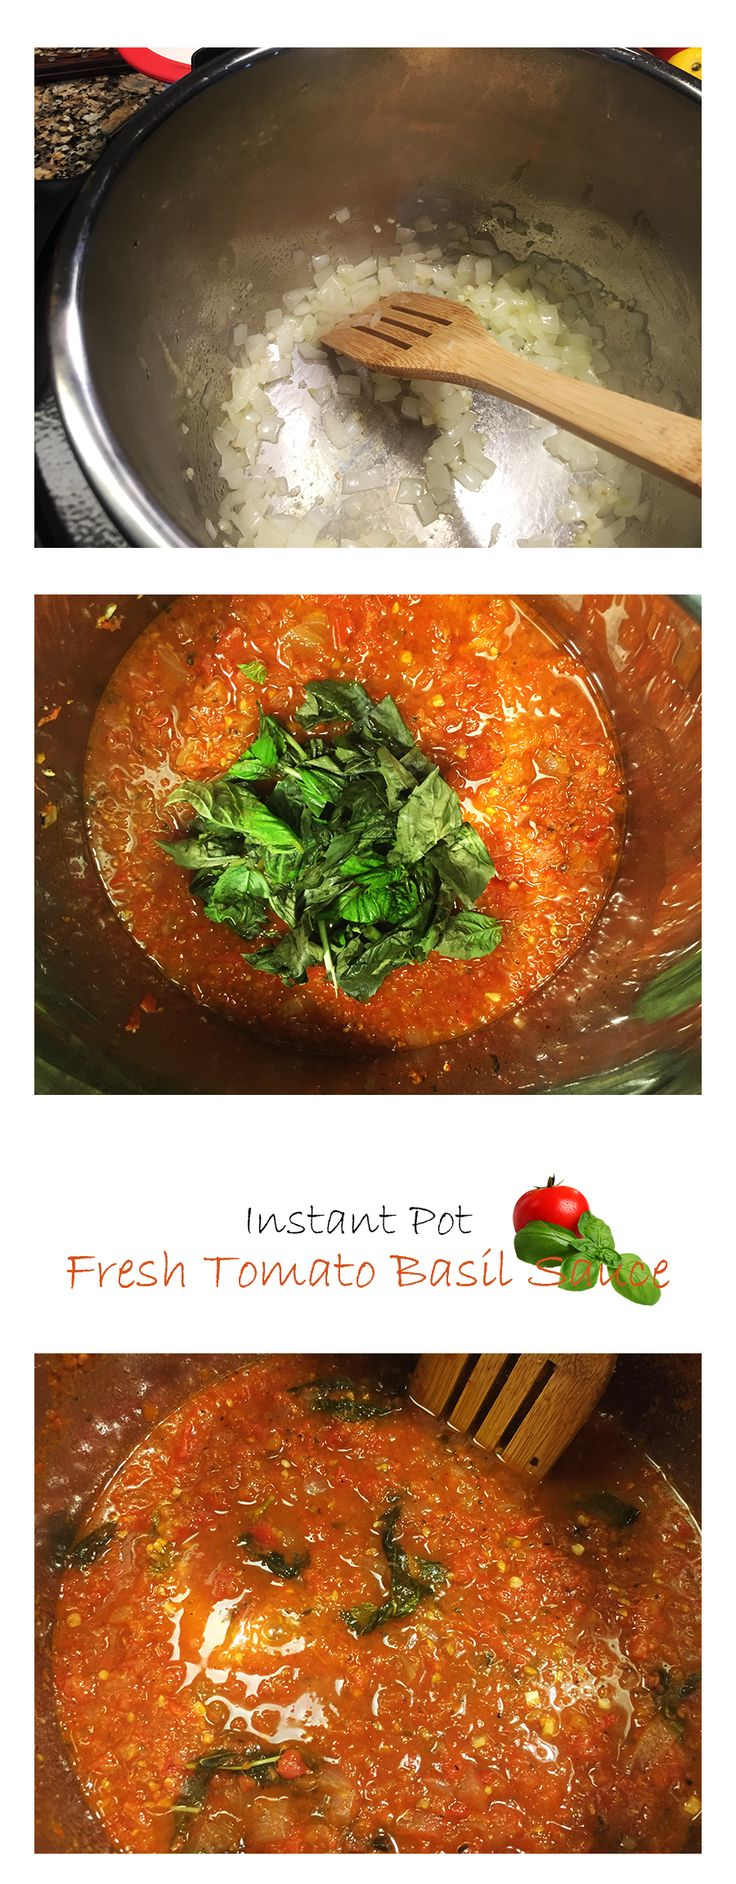 Instant Pot Fresh Tomato Basil Sauce.  So quick and easy to prepare. 1 SmartPoint.